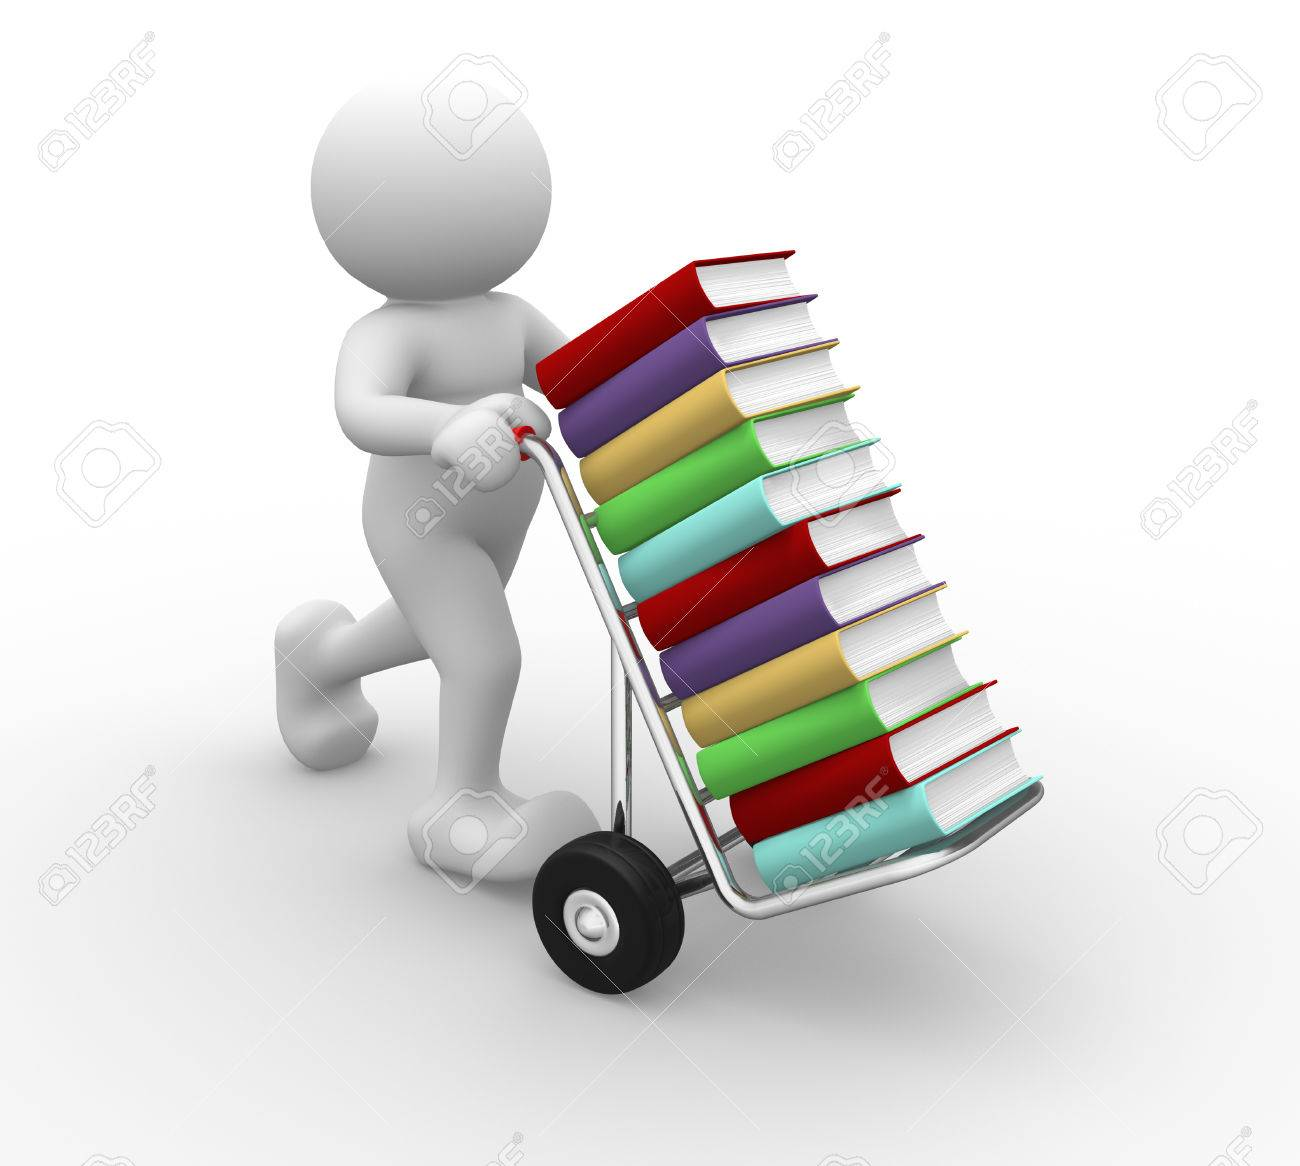 3d people - man, person with handtruck and books Standard-Bild - 33250024